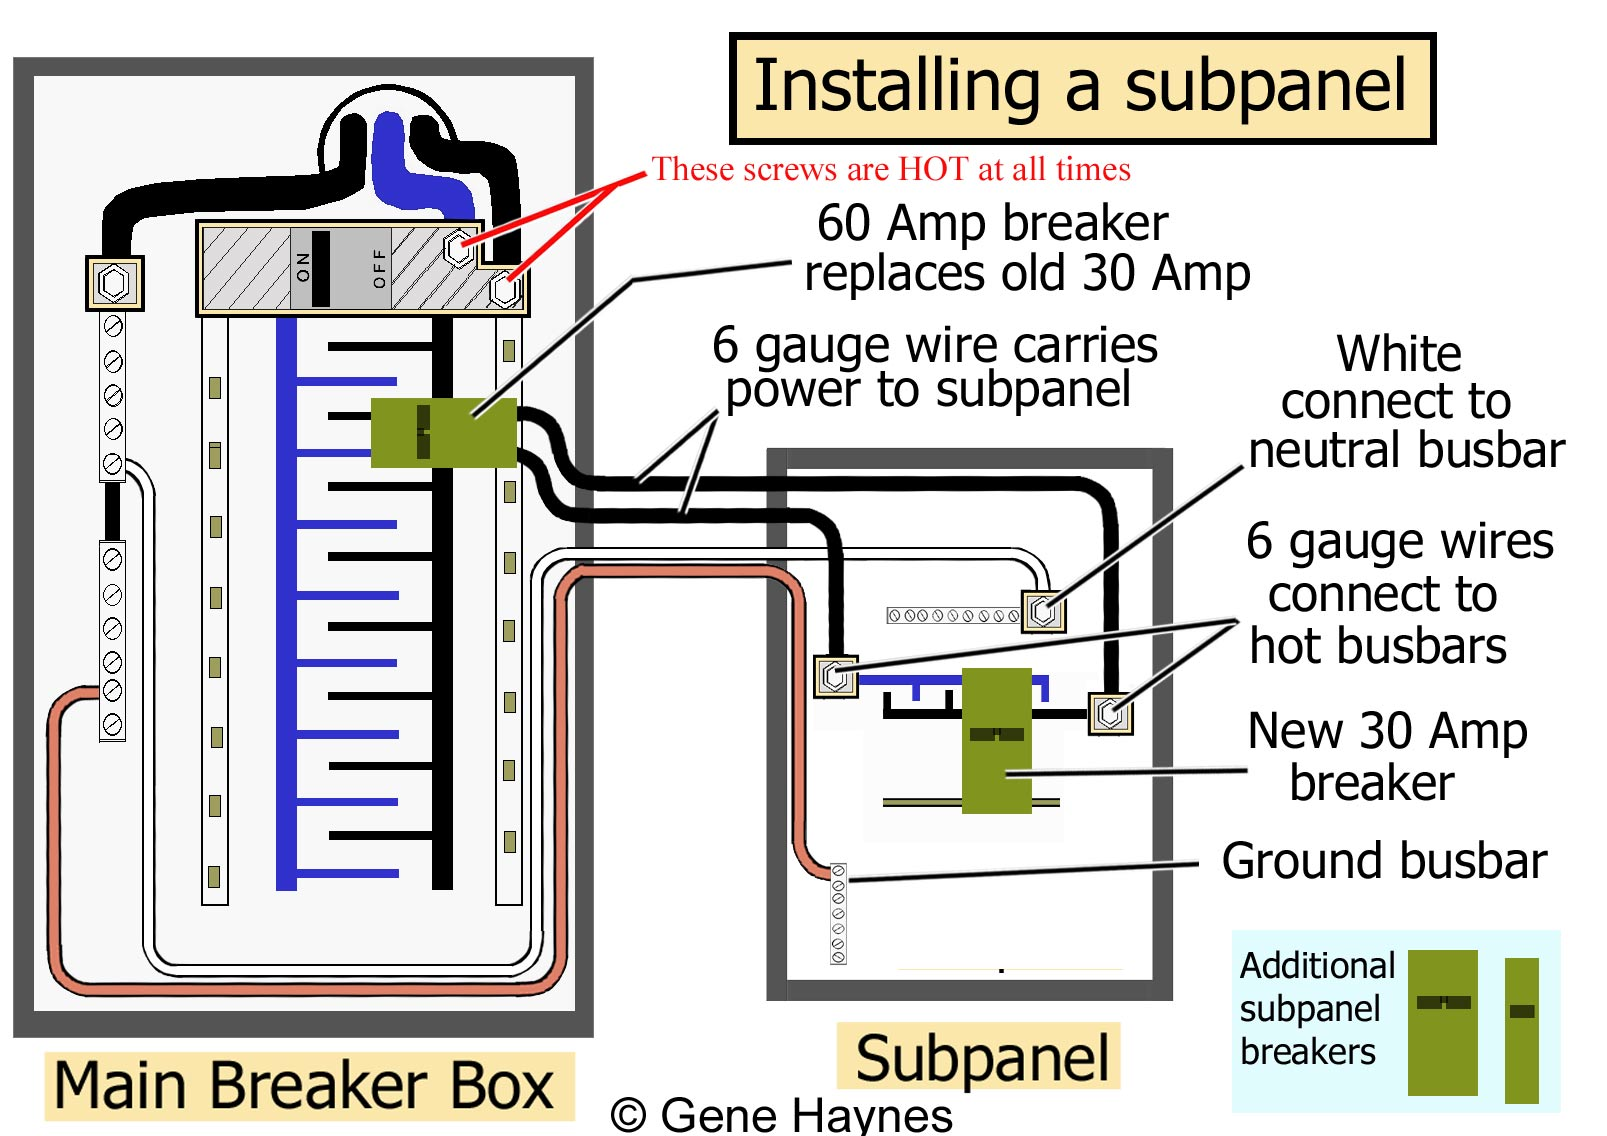 how to install a subpanel how to install main lug Electric Breaker Panel Box Wiring 1) 60 150 amp breaker replaces any 240 breaker in main box near top of box electric panel wiring breaker box